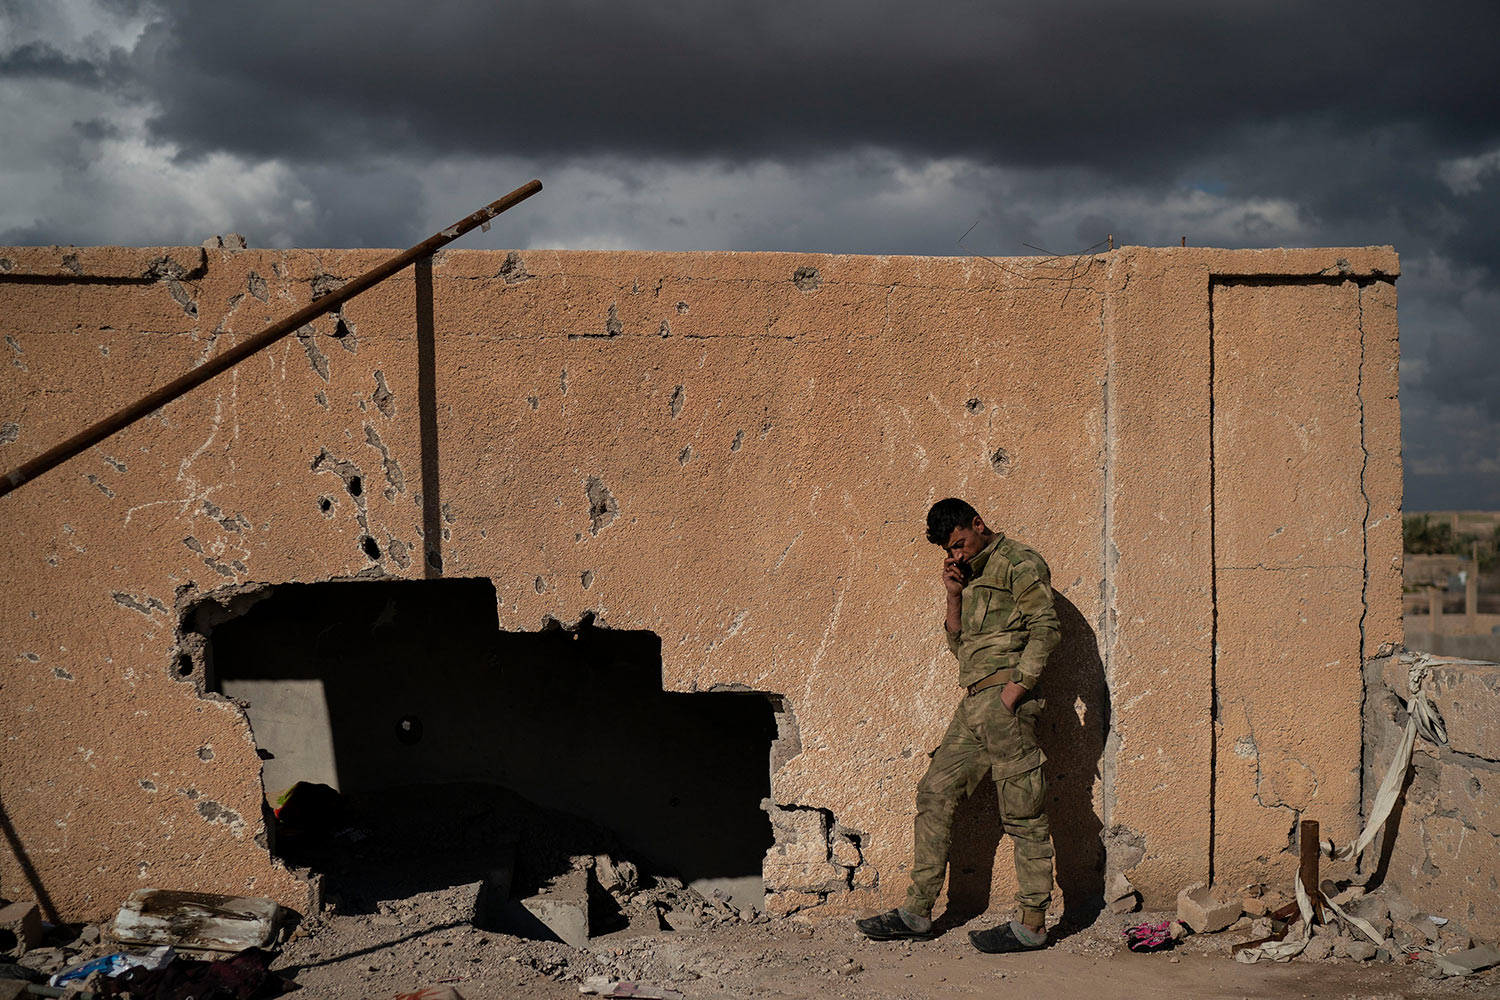 A U.S.-backed Syrian Democratic Forces (SDF) fighter talks on his phone from atop a building recently taken by SDF as fight against Islamic State militants continue in the village of Baghouz, Syria, Sunday, Feb. 17, 2019. (AP Photo/Felipe Dana)